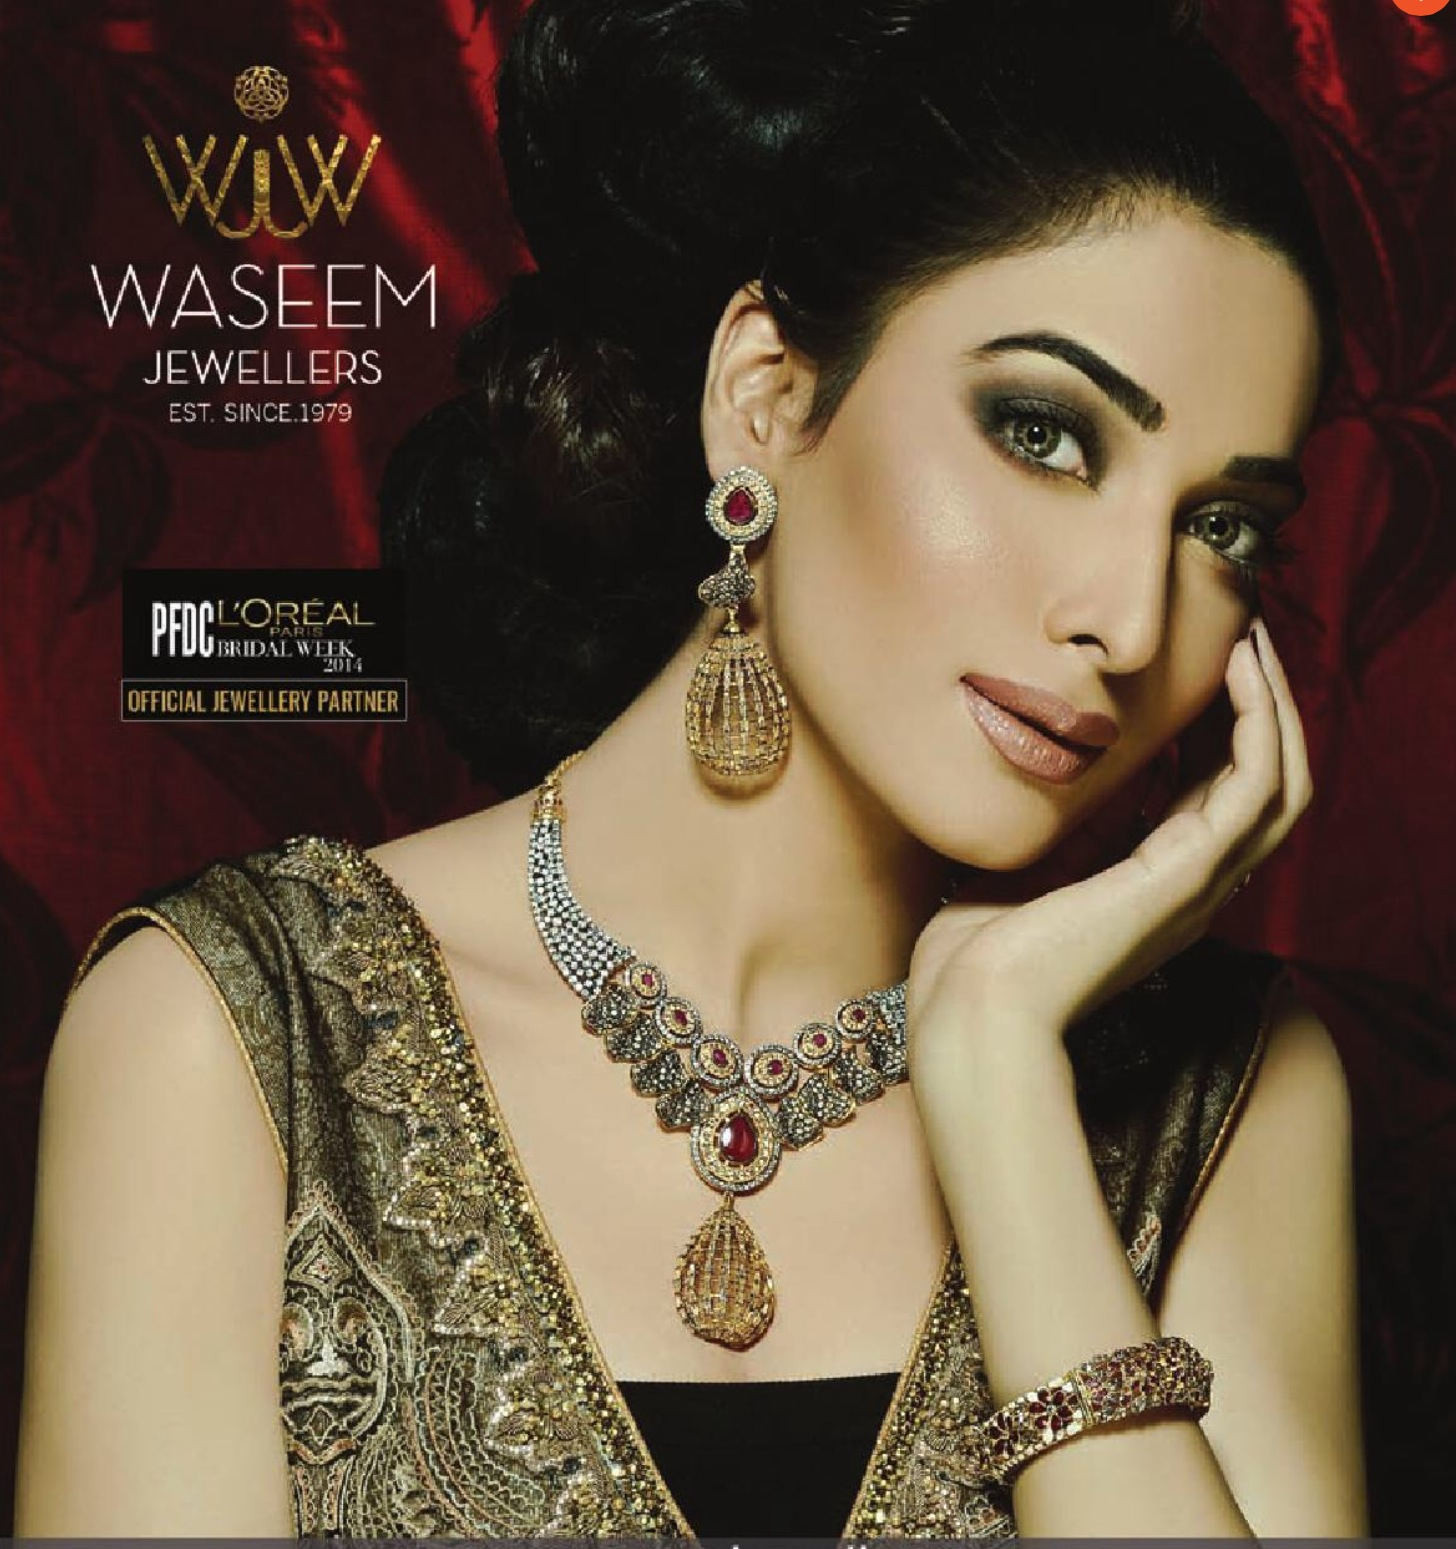 Waseem Jewellers Campaign with a model very similar to Amal Clooney